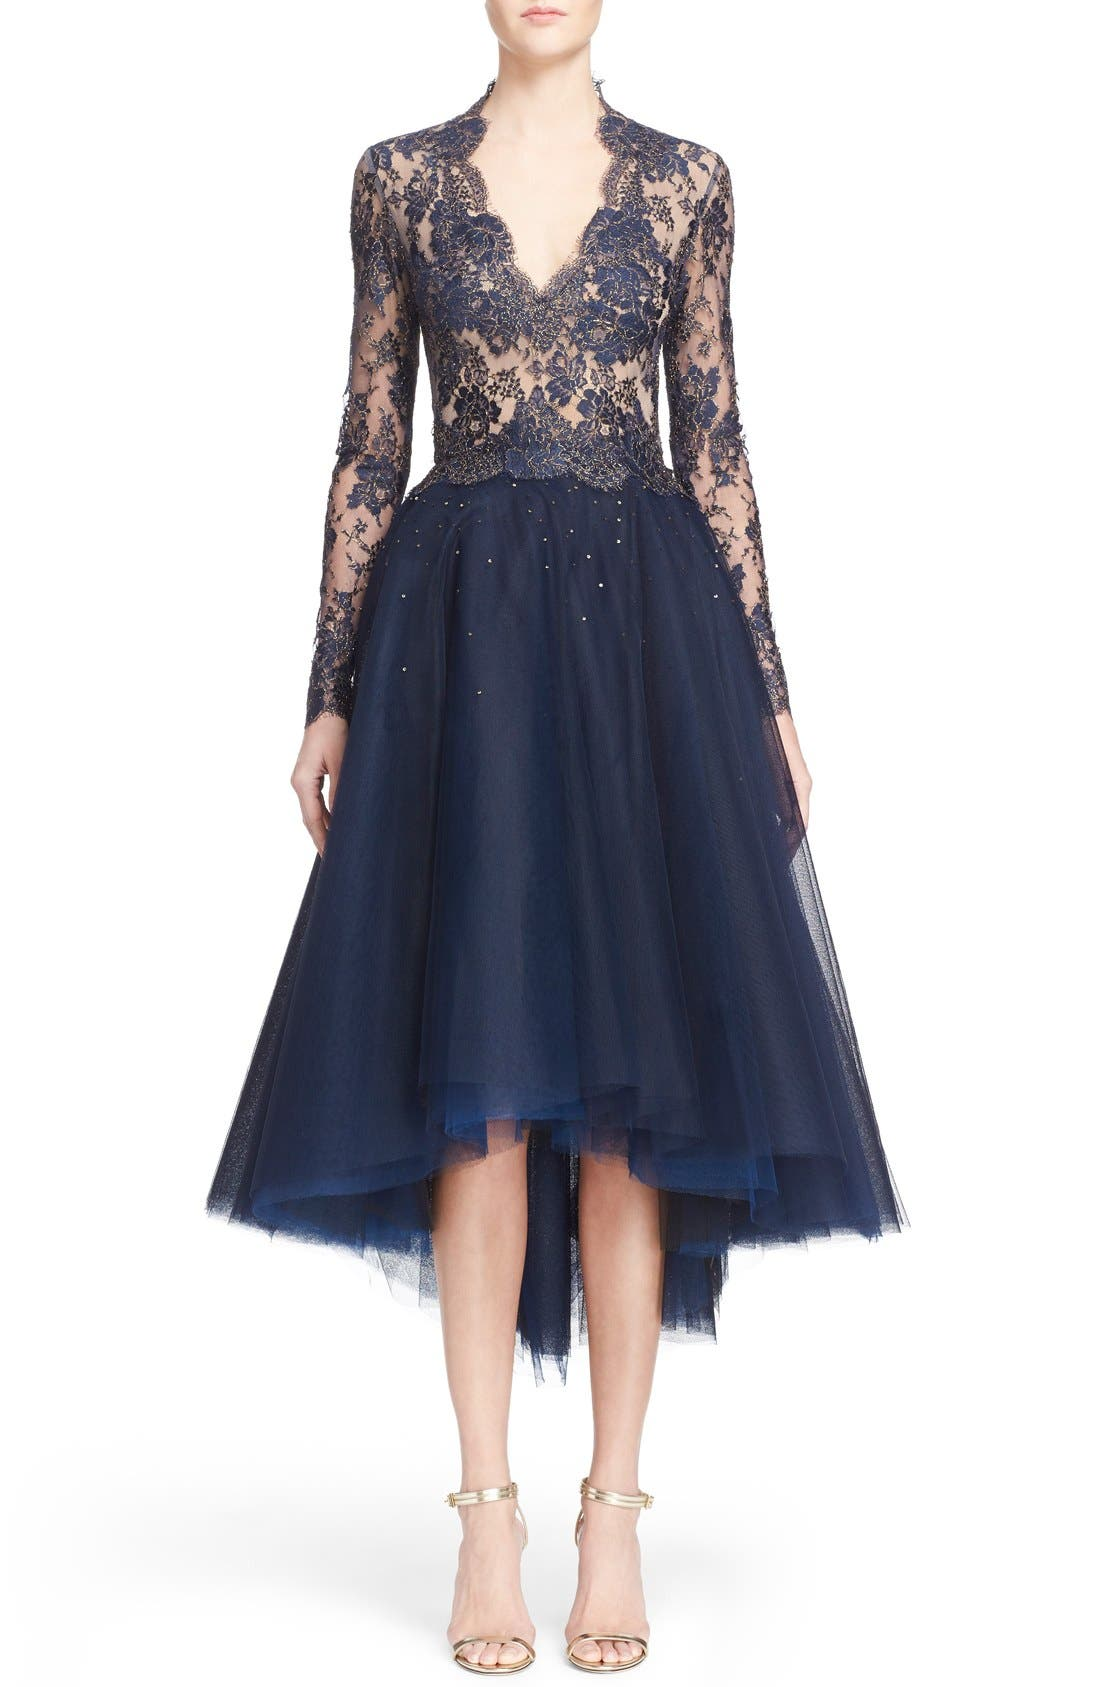 Main Image - Reem Acra Chantilly Lace & Embellished Tulle High/Low Dress